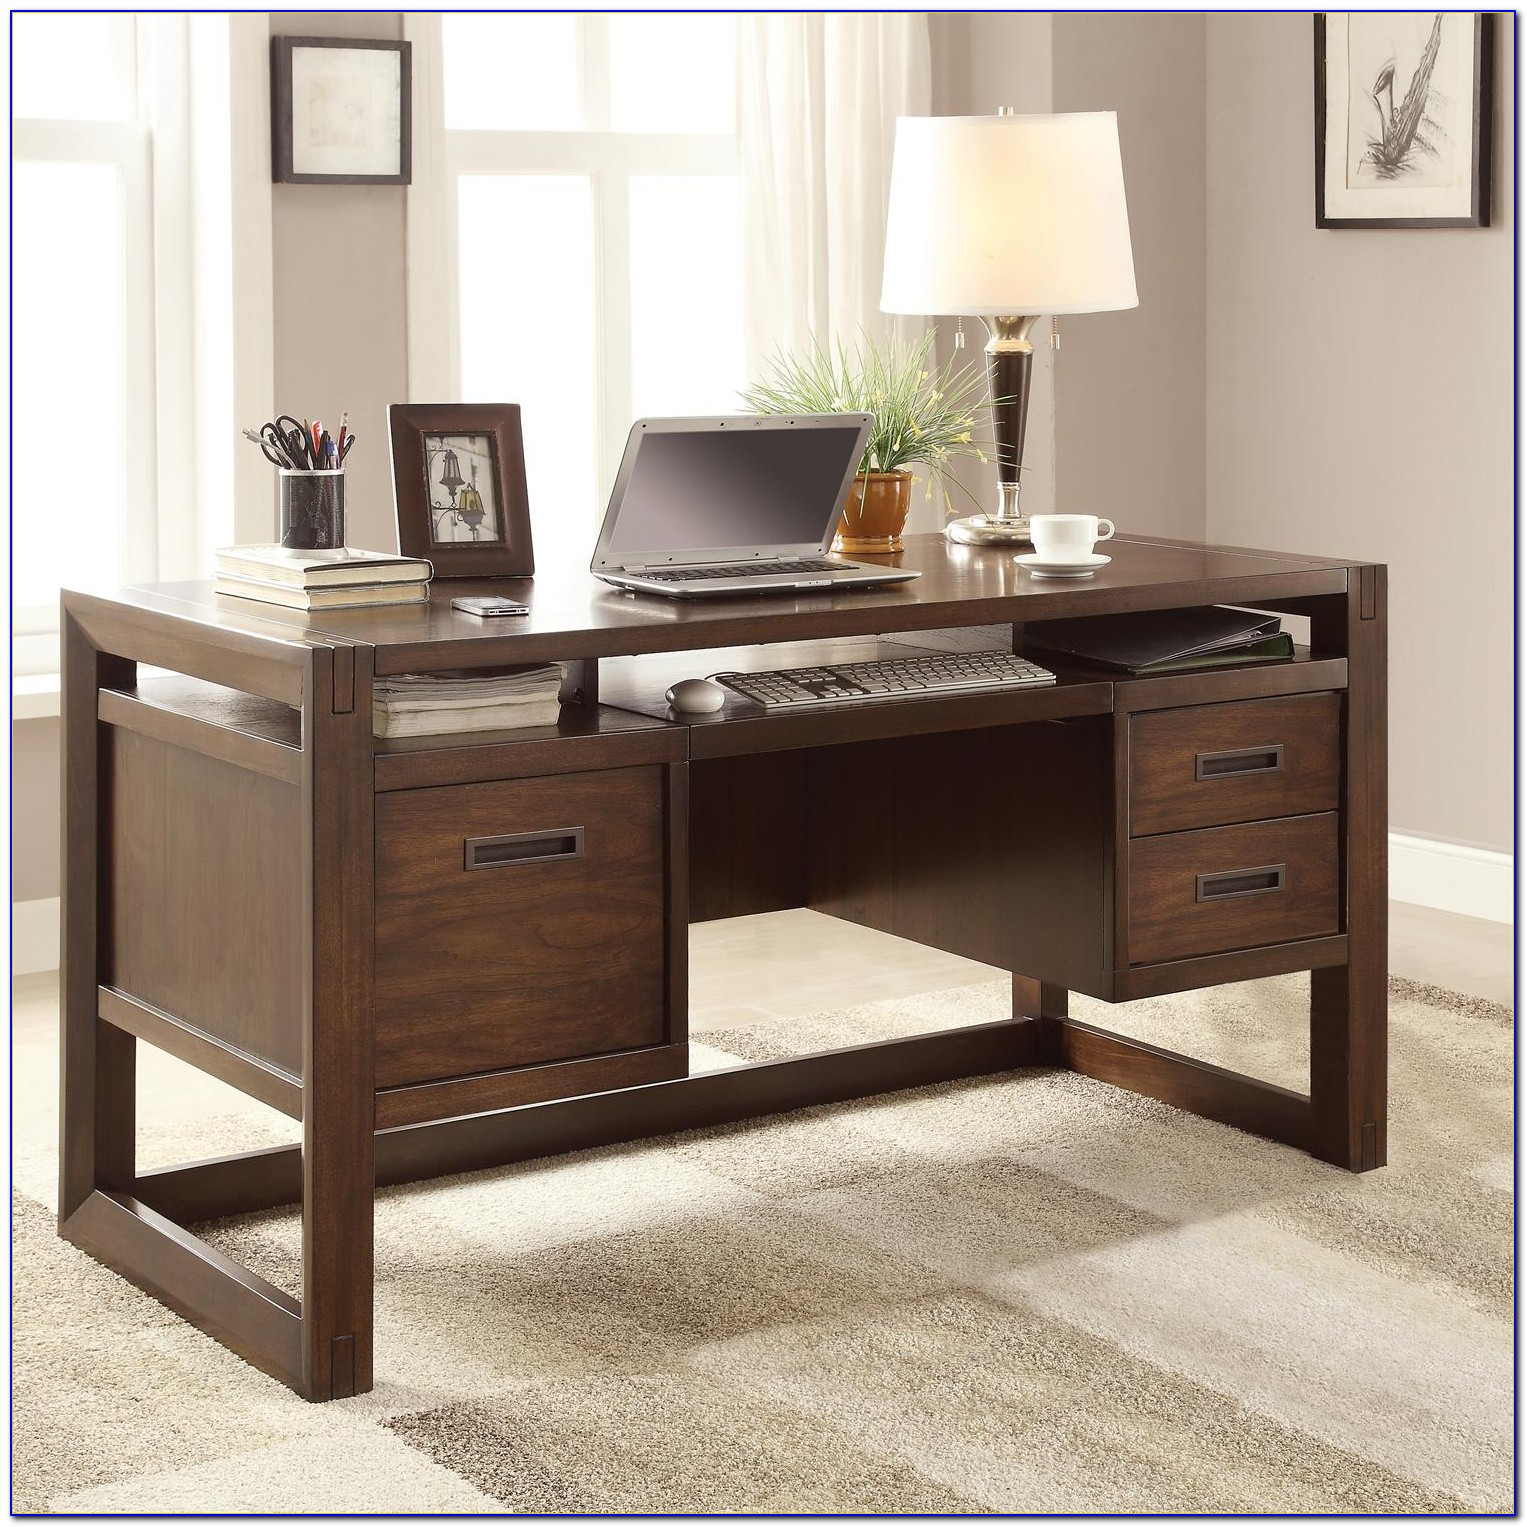 Modern Home Office Workstation Furniture Desk Home Design Ideas Amdl0e82dy86672